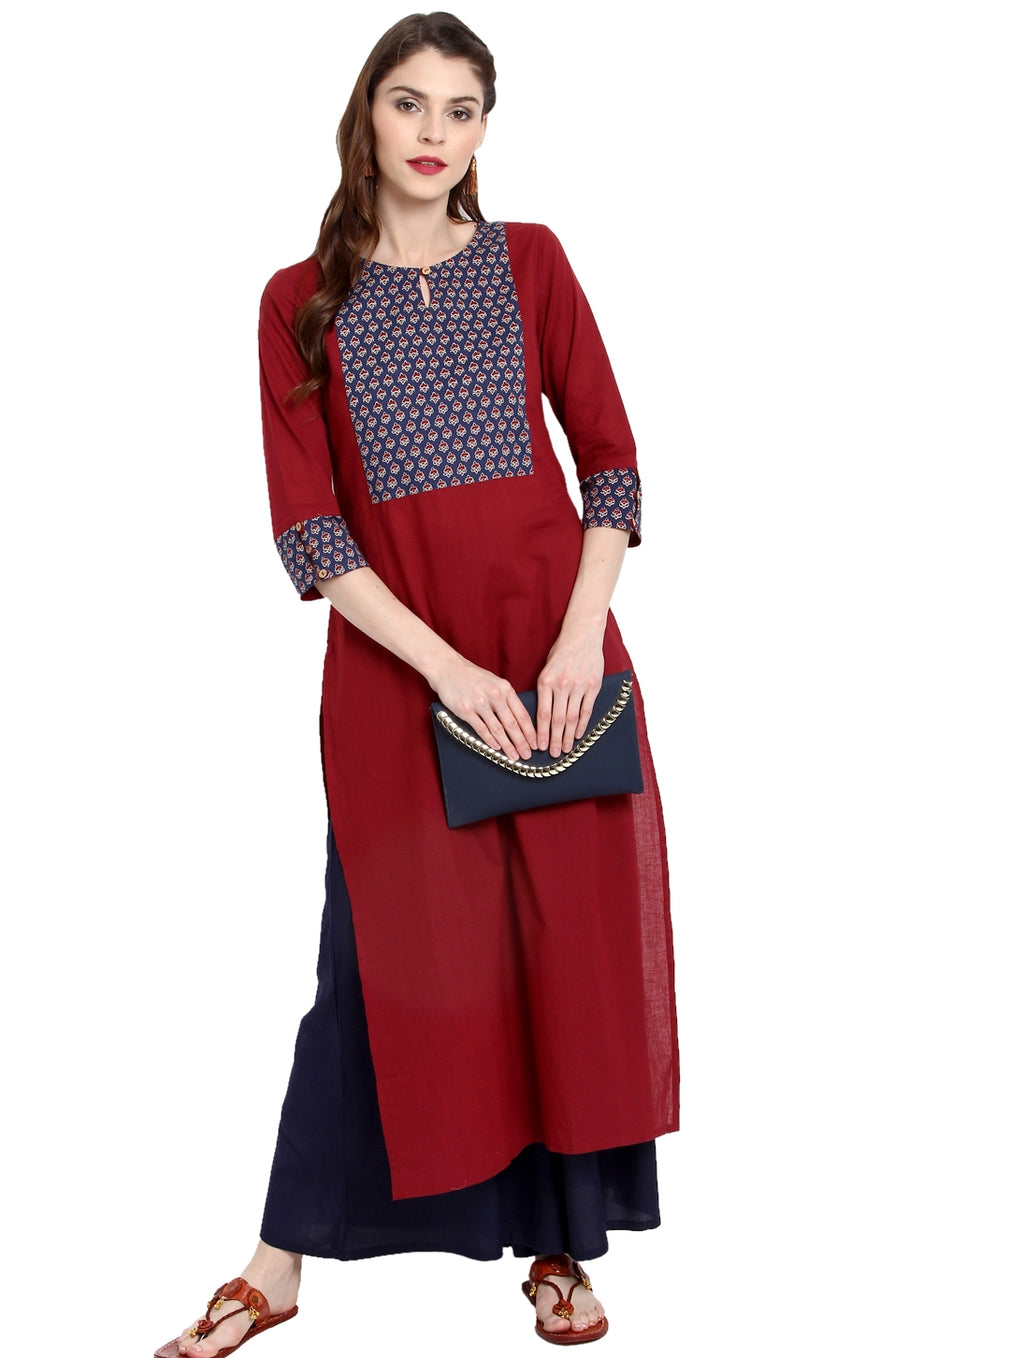 Red Color Cotton Readymade Party Wear Kurtis ( Sizes-36,38,40,42,44) Janasya Catlog SJ-10219